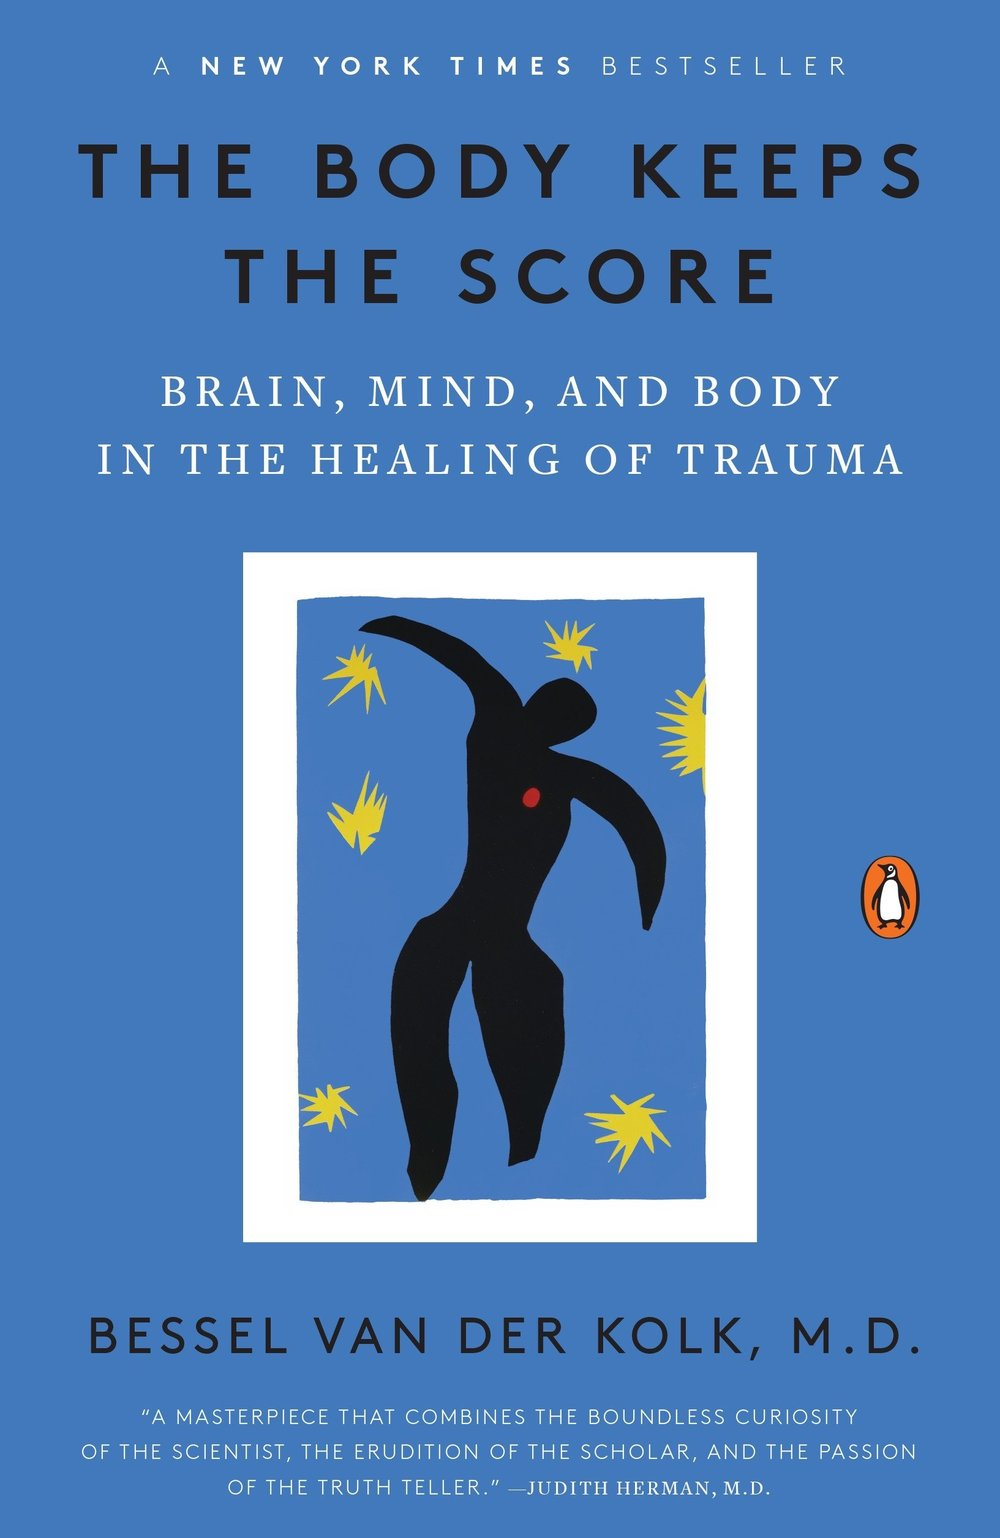 The Body Keeps the Score - This is the first book I recommend for anyone who has an interest in understanding the impact of trauma on the body.Whether you are looking to become more